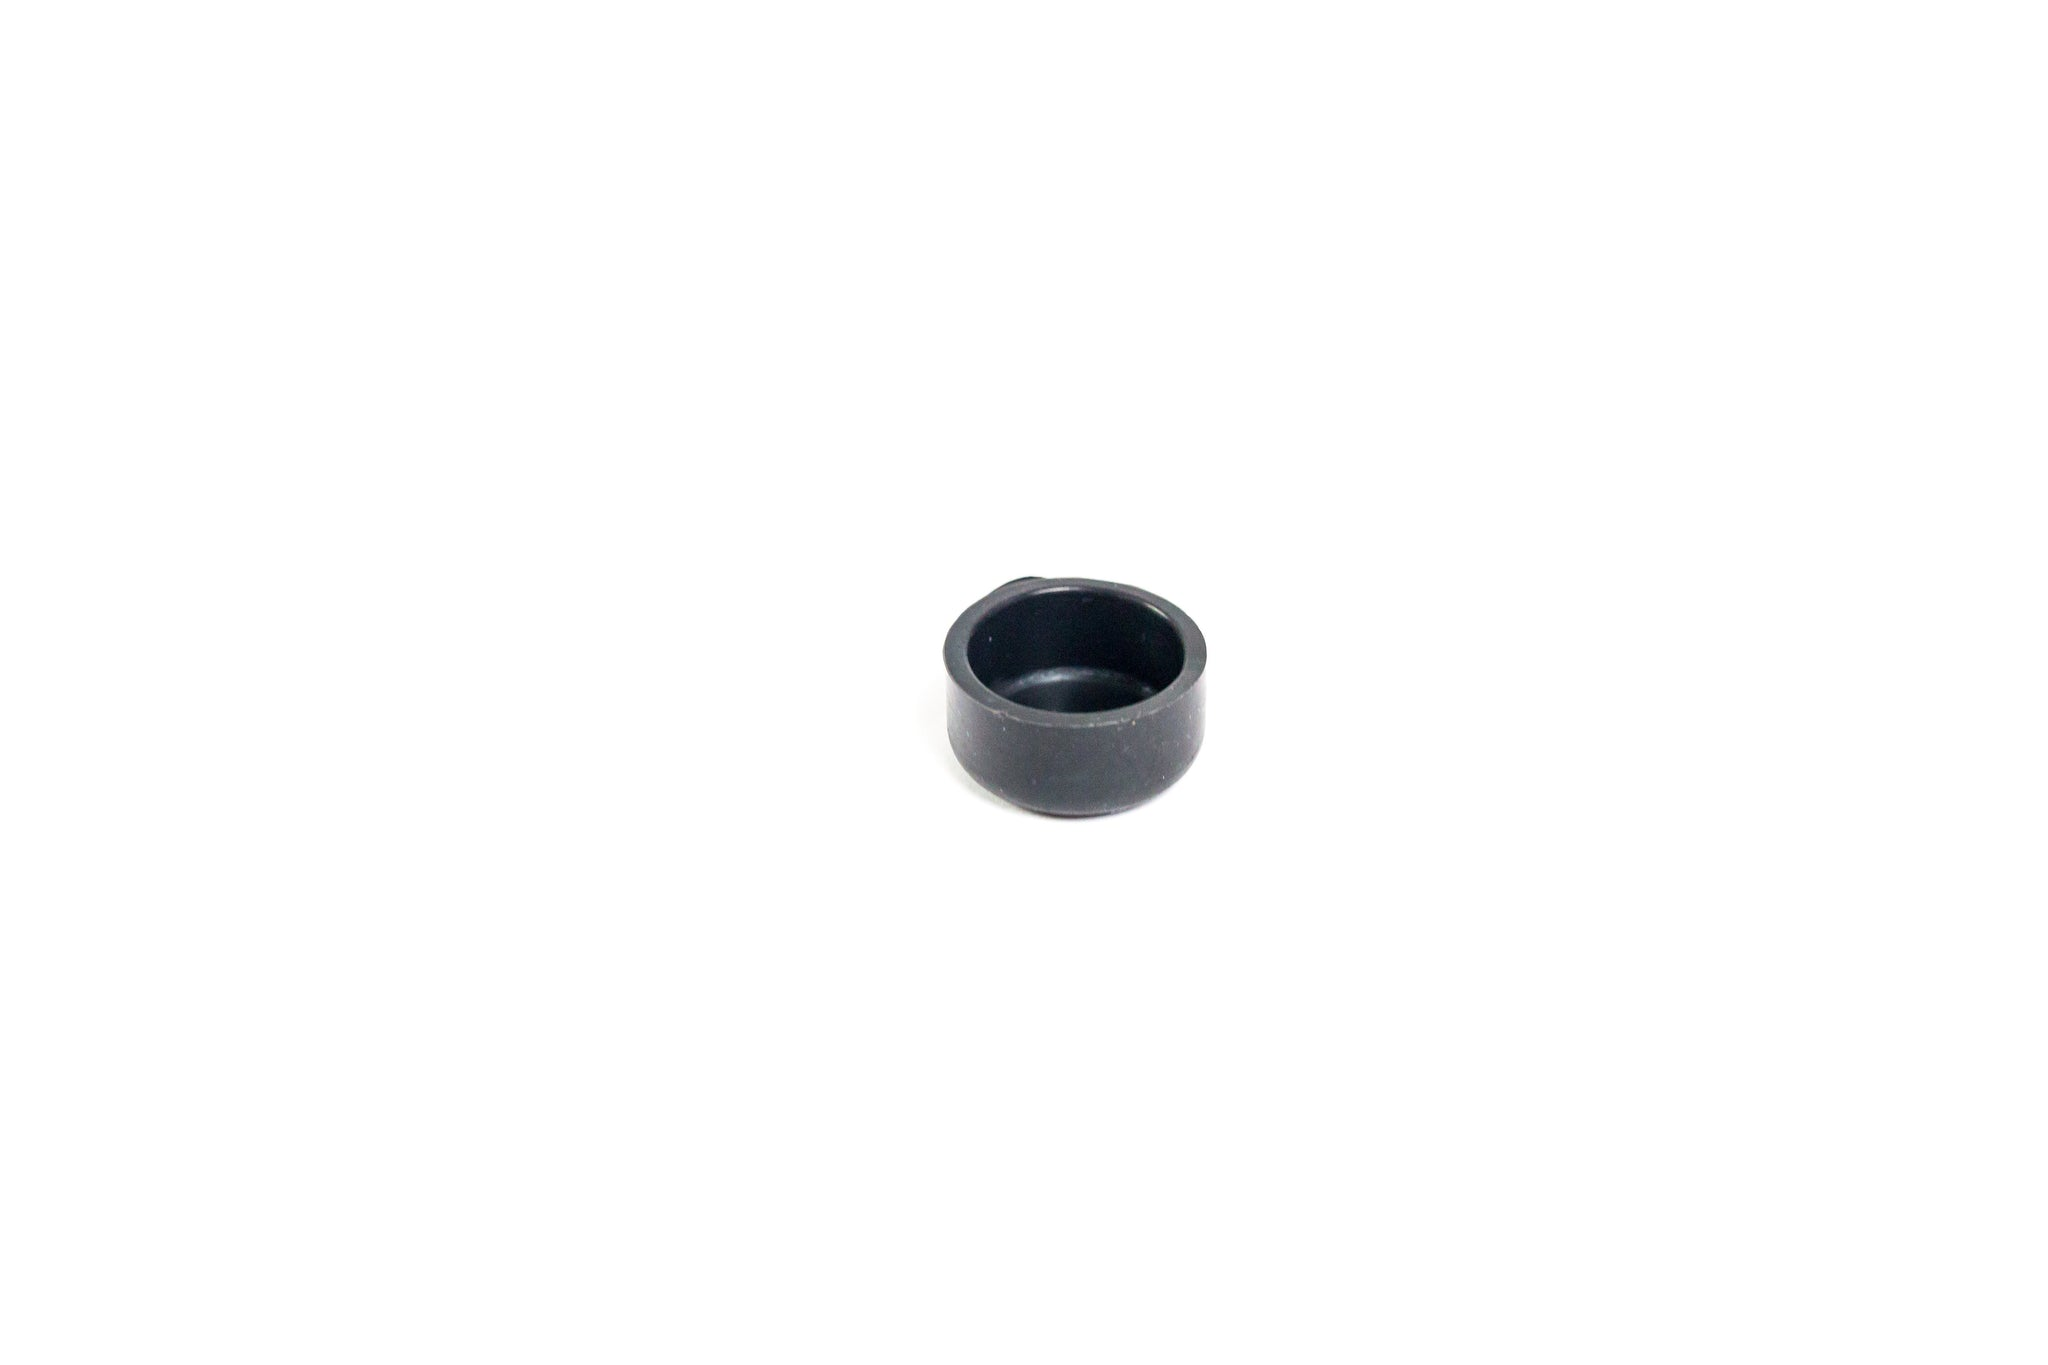 Silicone end cap for the removable check valve